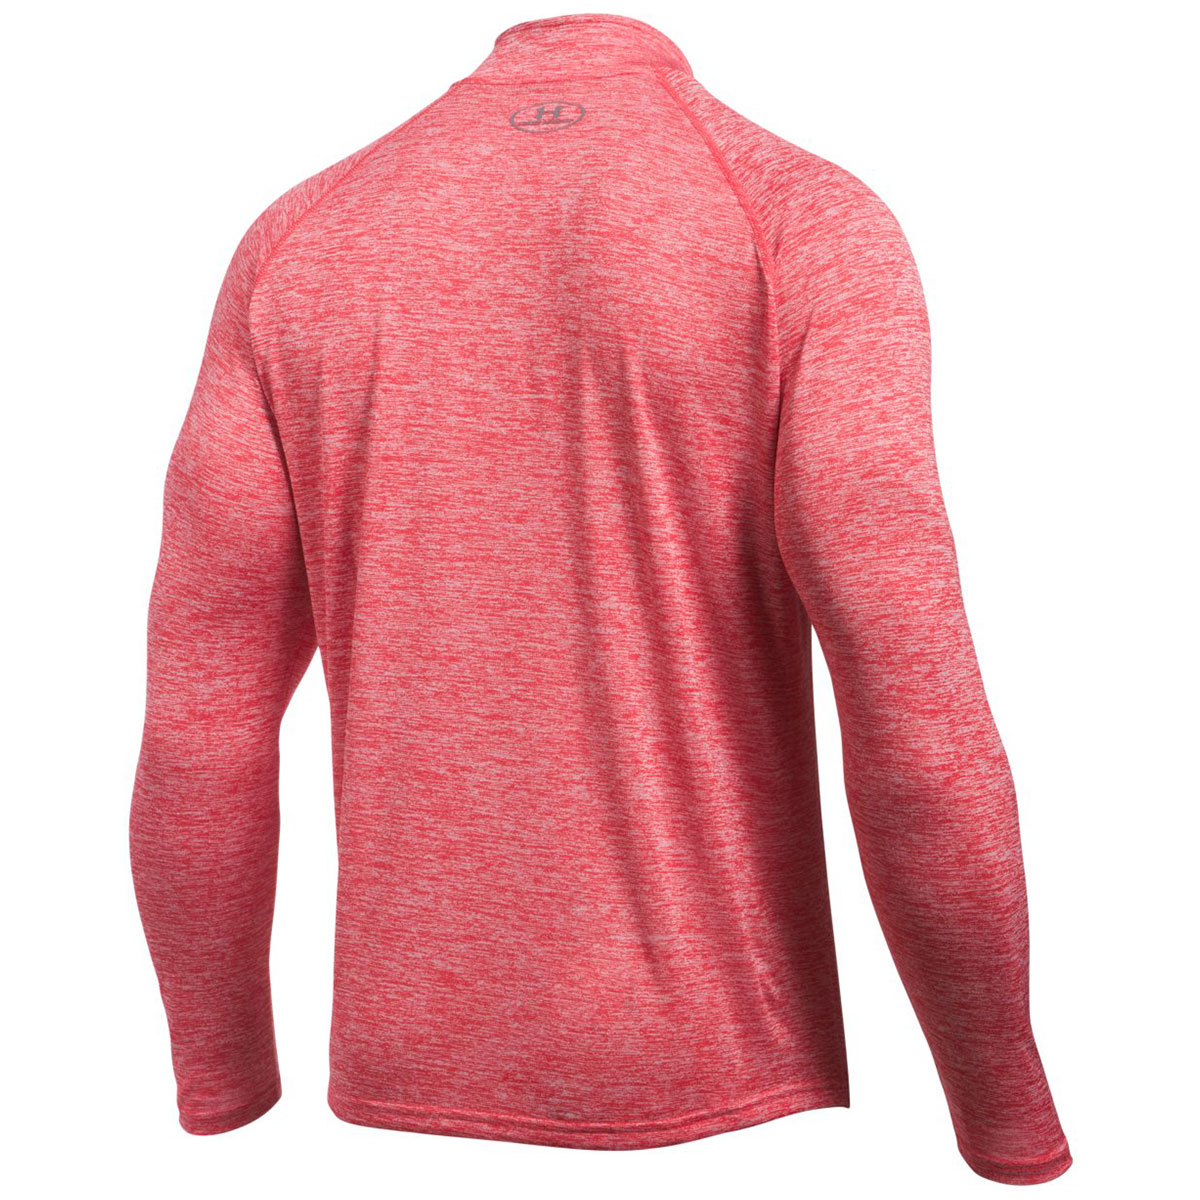 Under-Armour-Mens-UA-Tech-1-4-Zip-Long-Sleeve-Top-Workout-Layer-27-OFF-RRP thumbnail 68